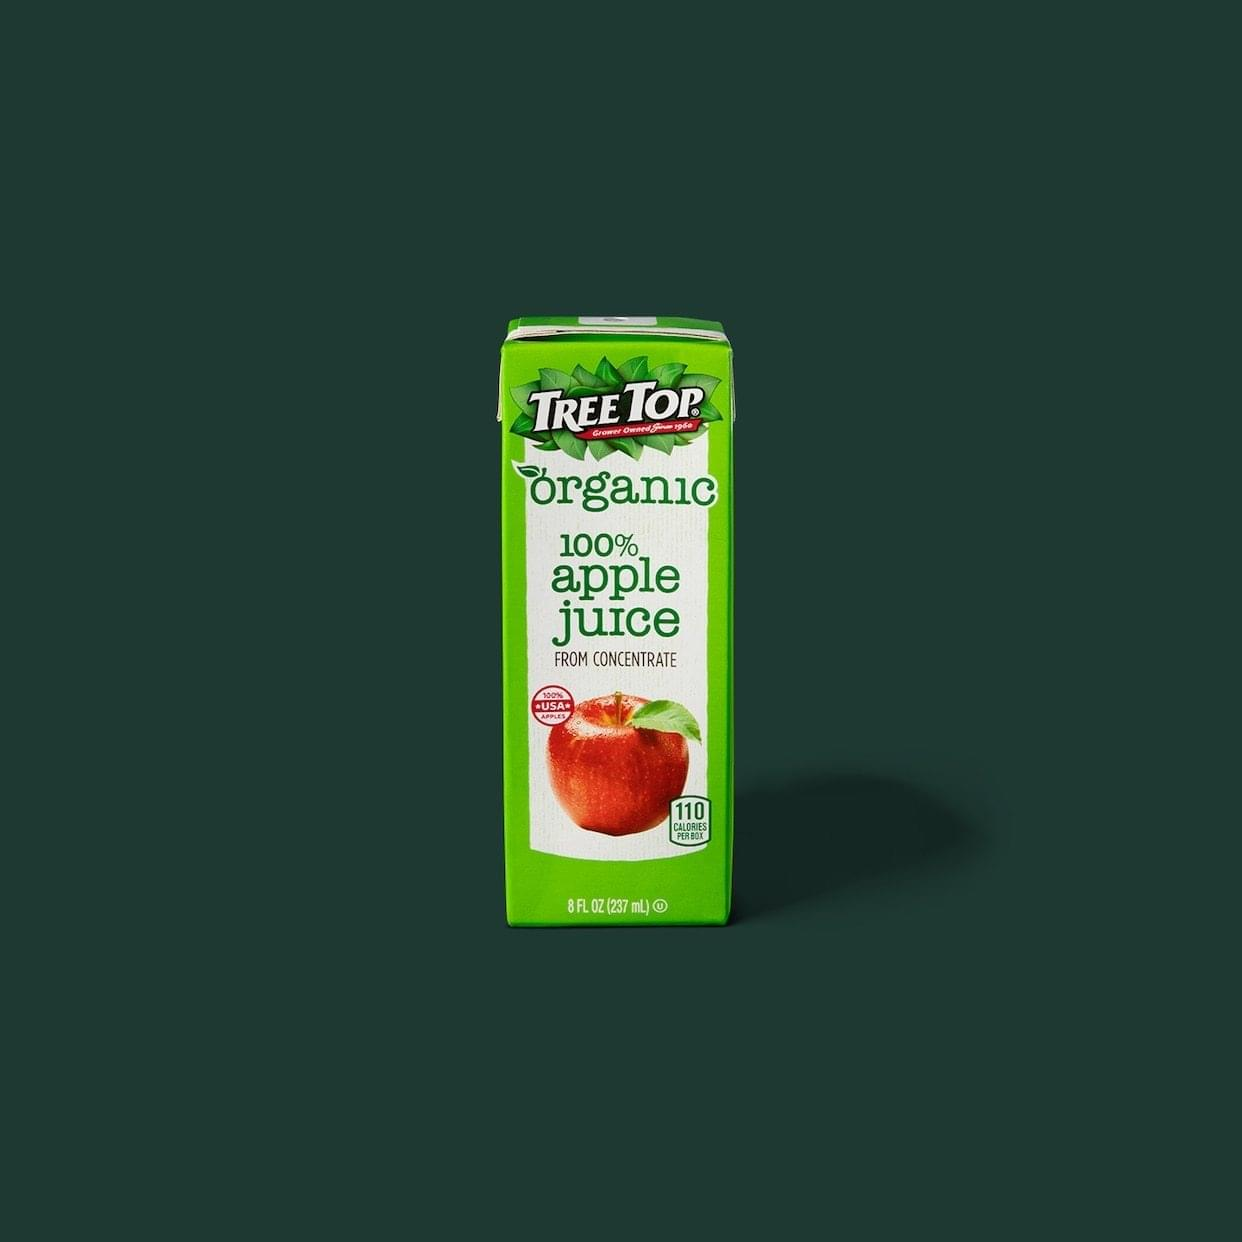 Starbucks Apple Juice Box Nutrition Facts